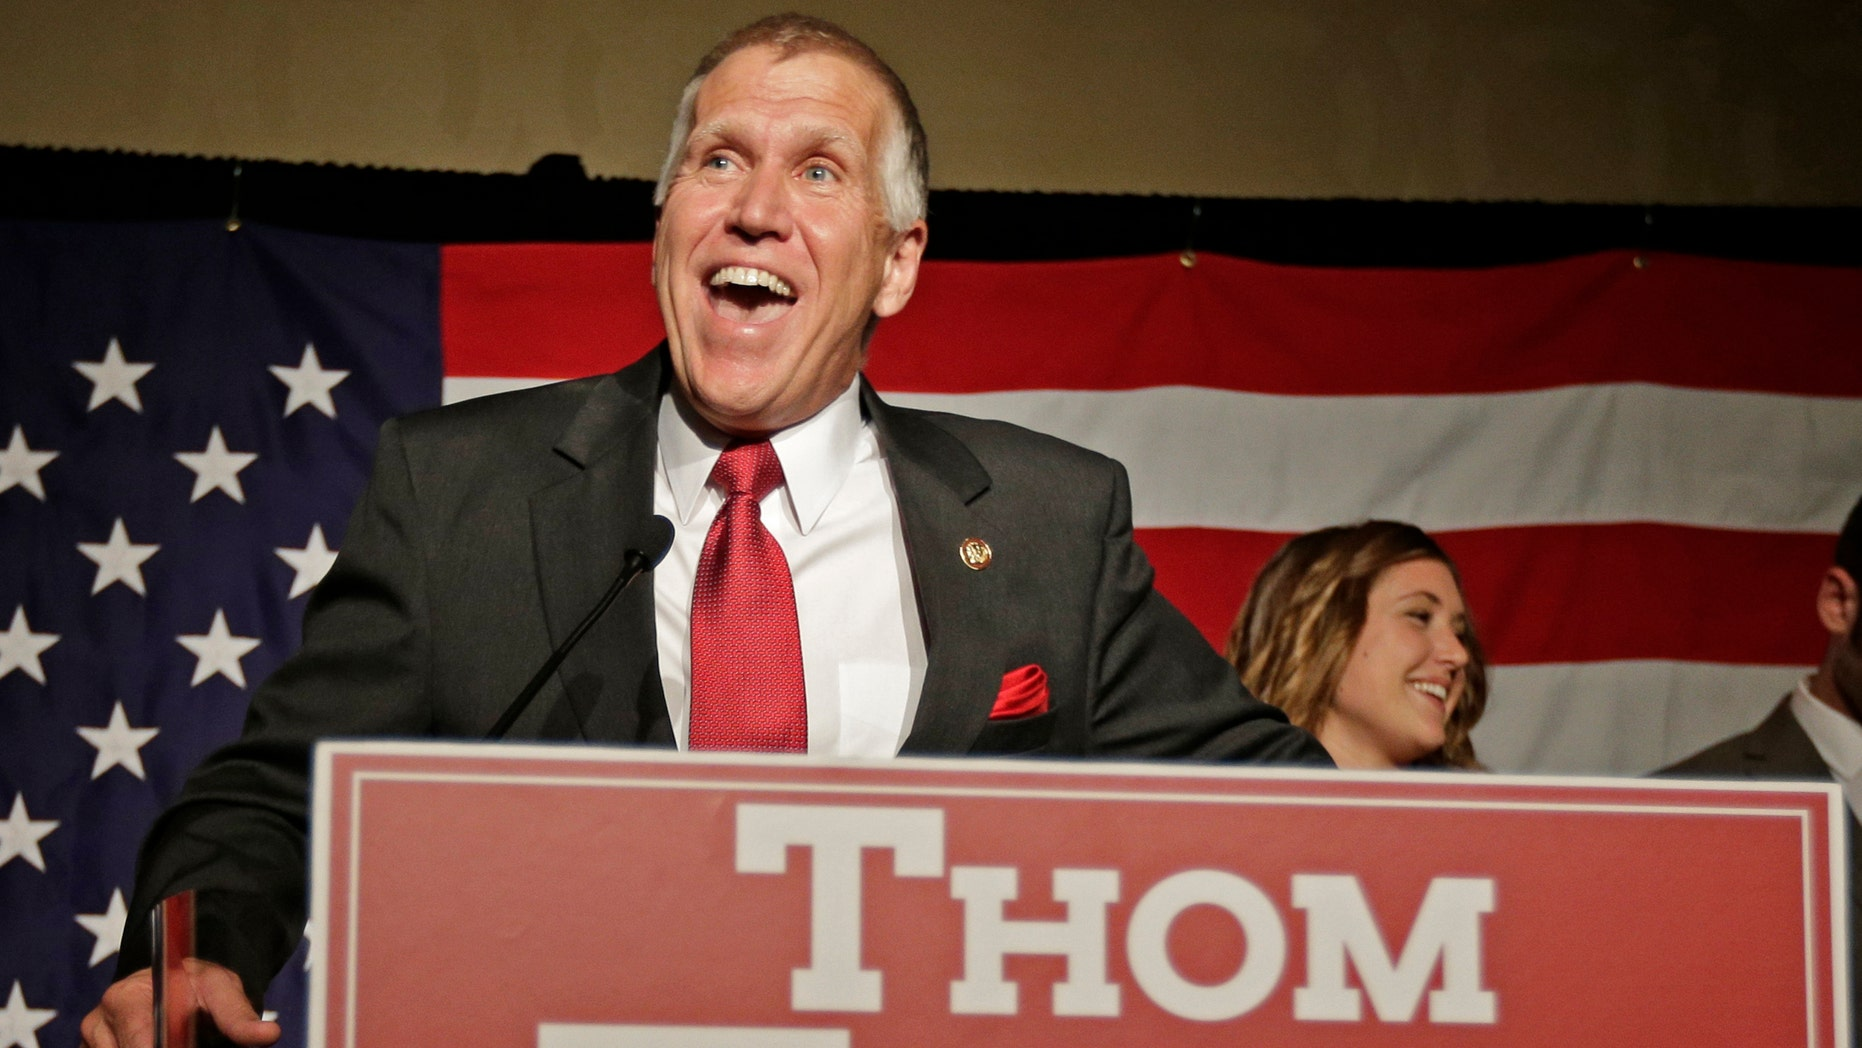 Thom Tillis after winning the Republican nomination for the U.S. Senate Tuesday, May 6, 2014.